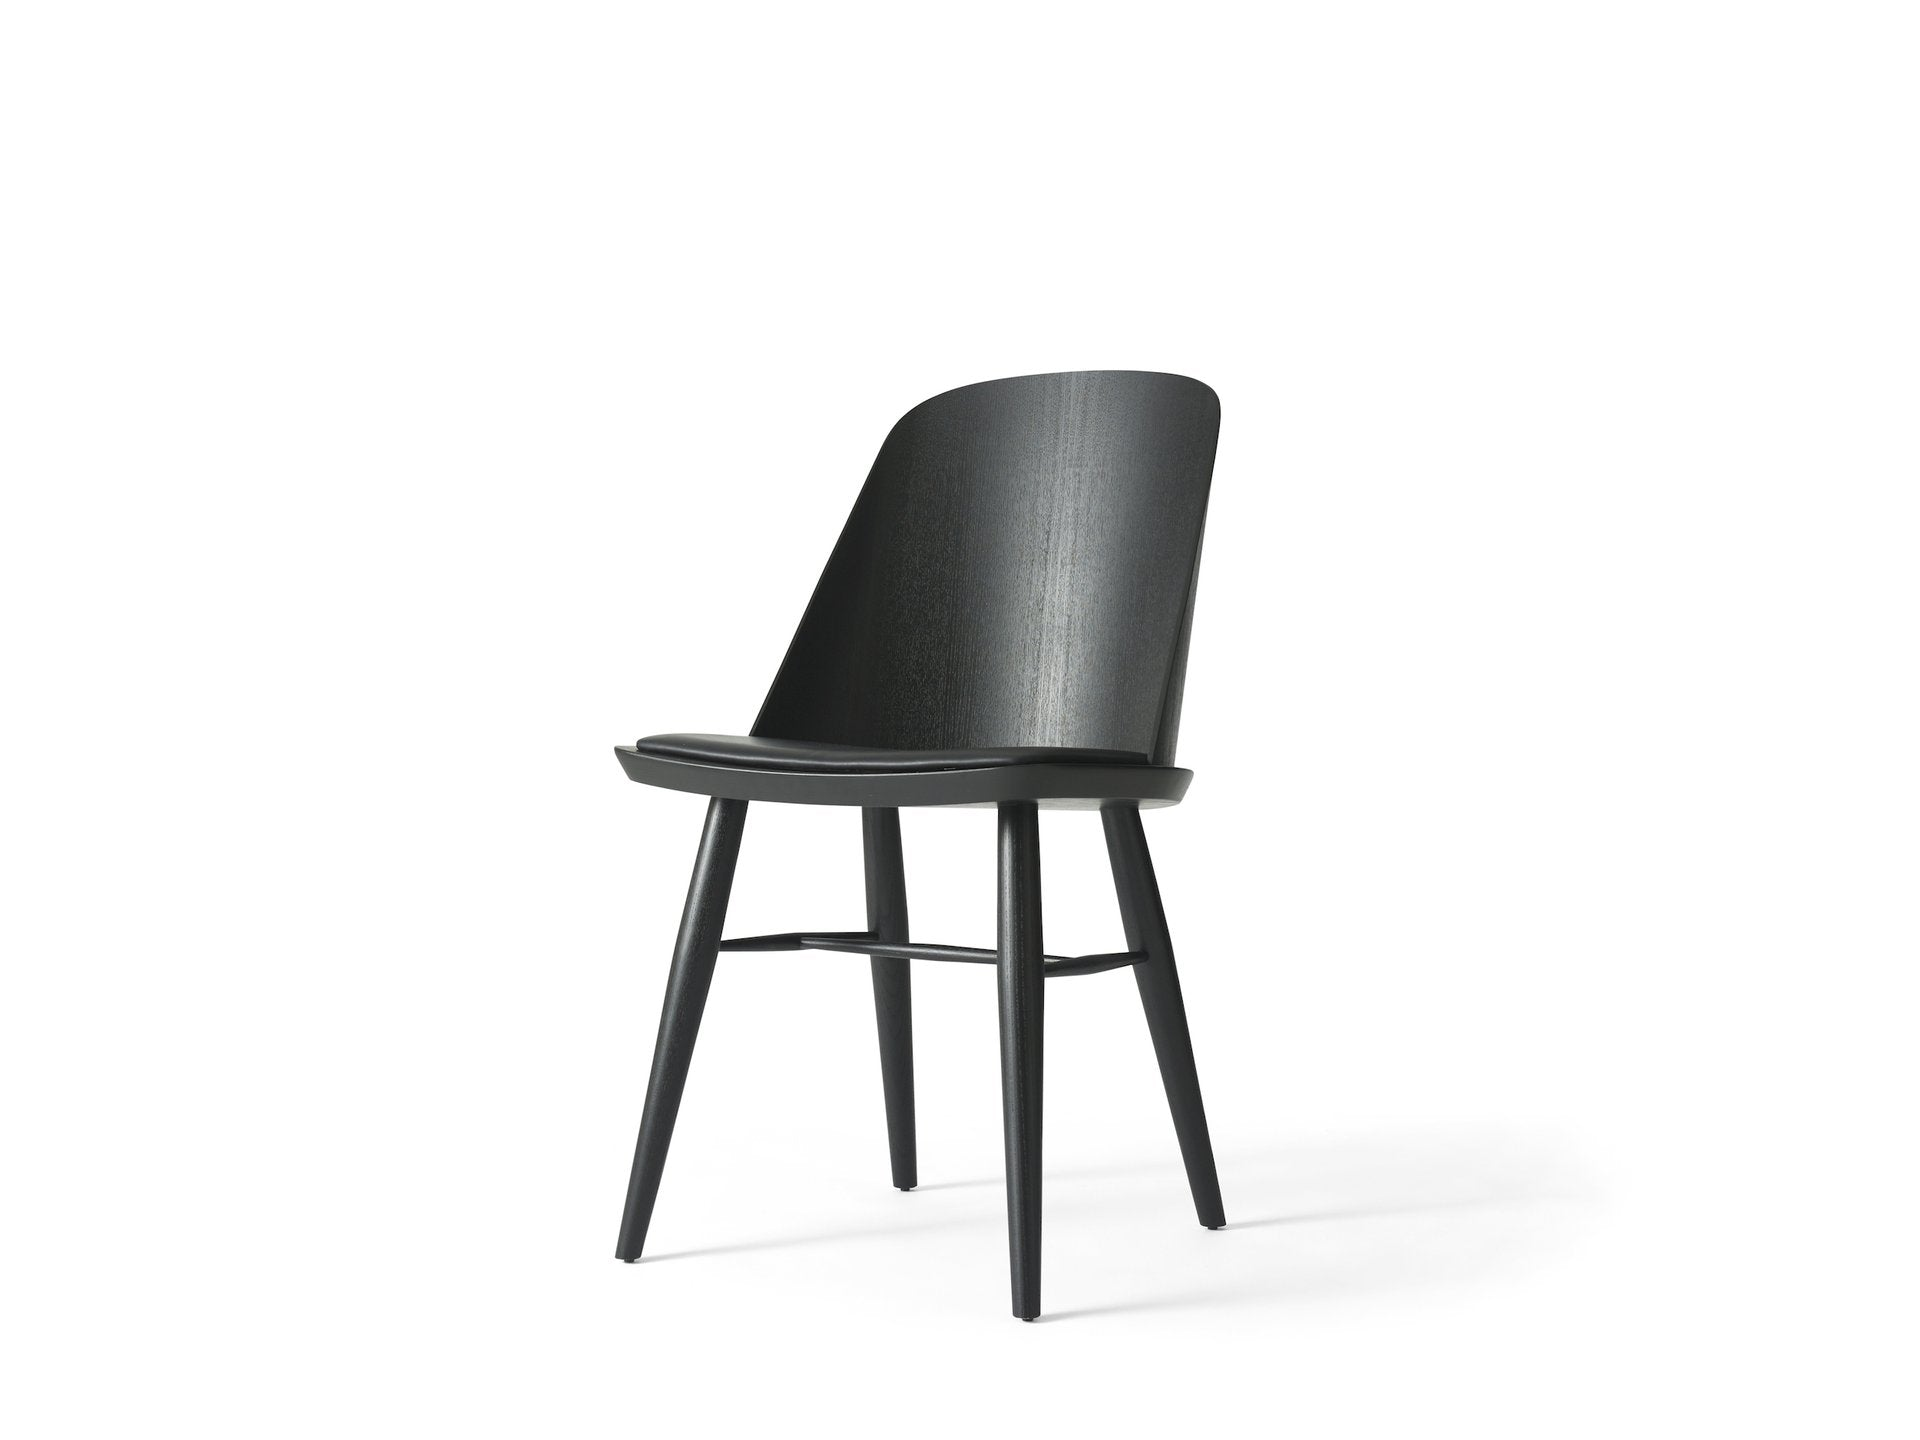 Synnes Chair-Falke Svatun-Menu-Black Ash w/Leather-danish-interior-furniture-denmark-Average-design-toronto-canada